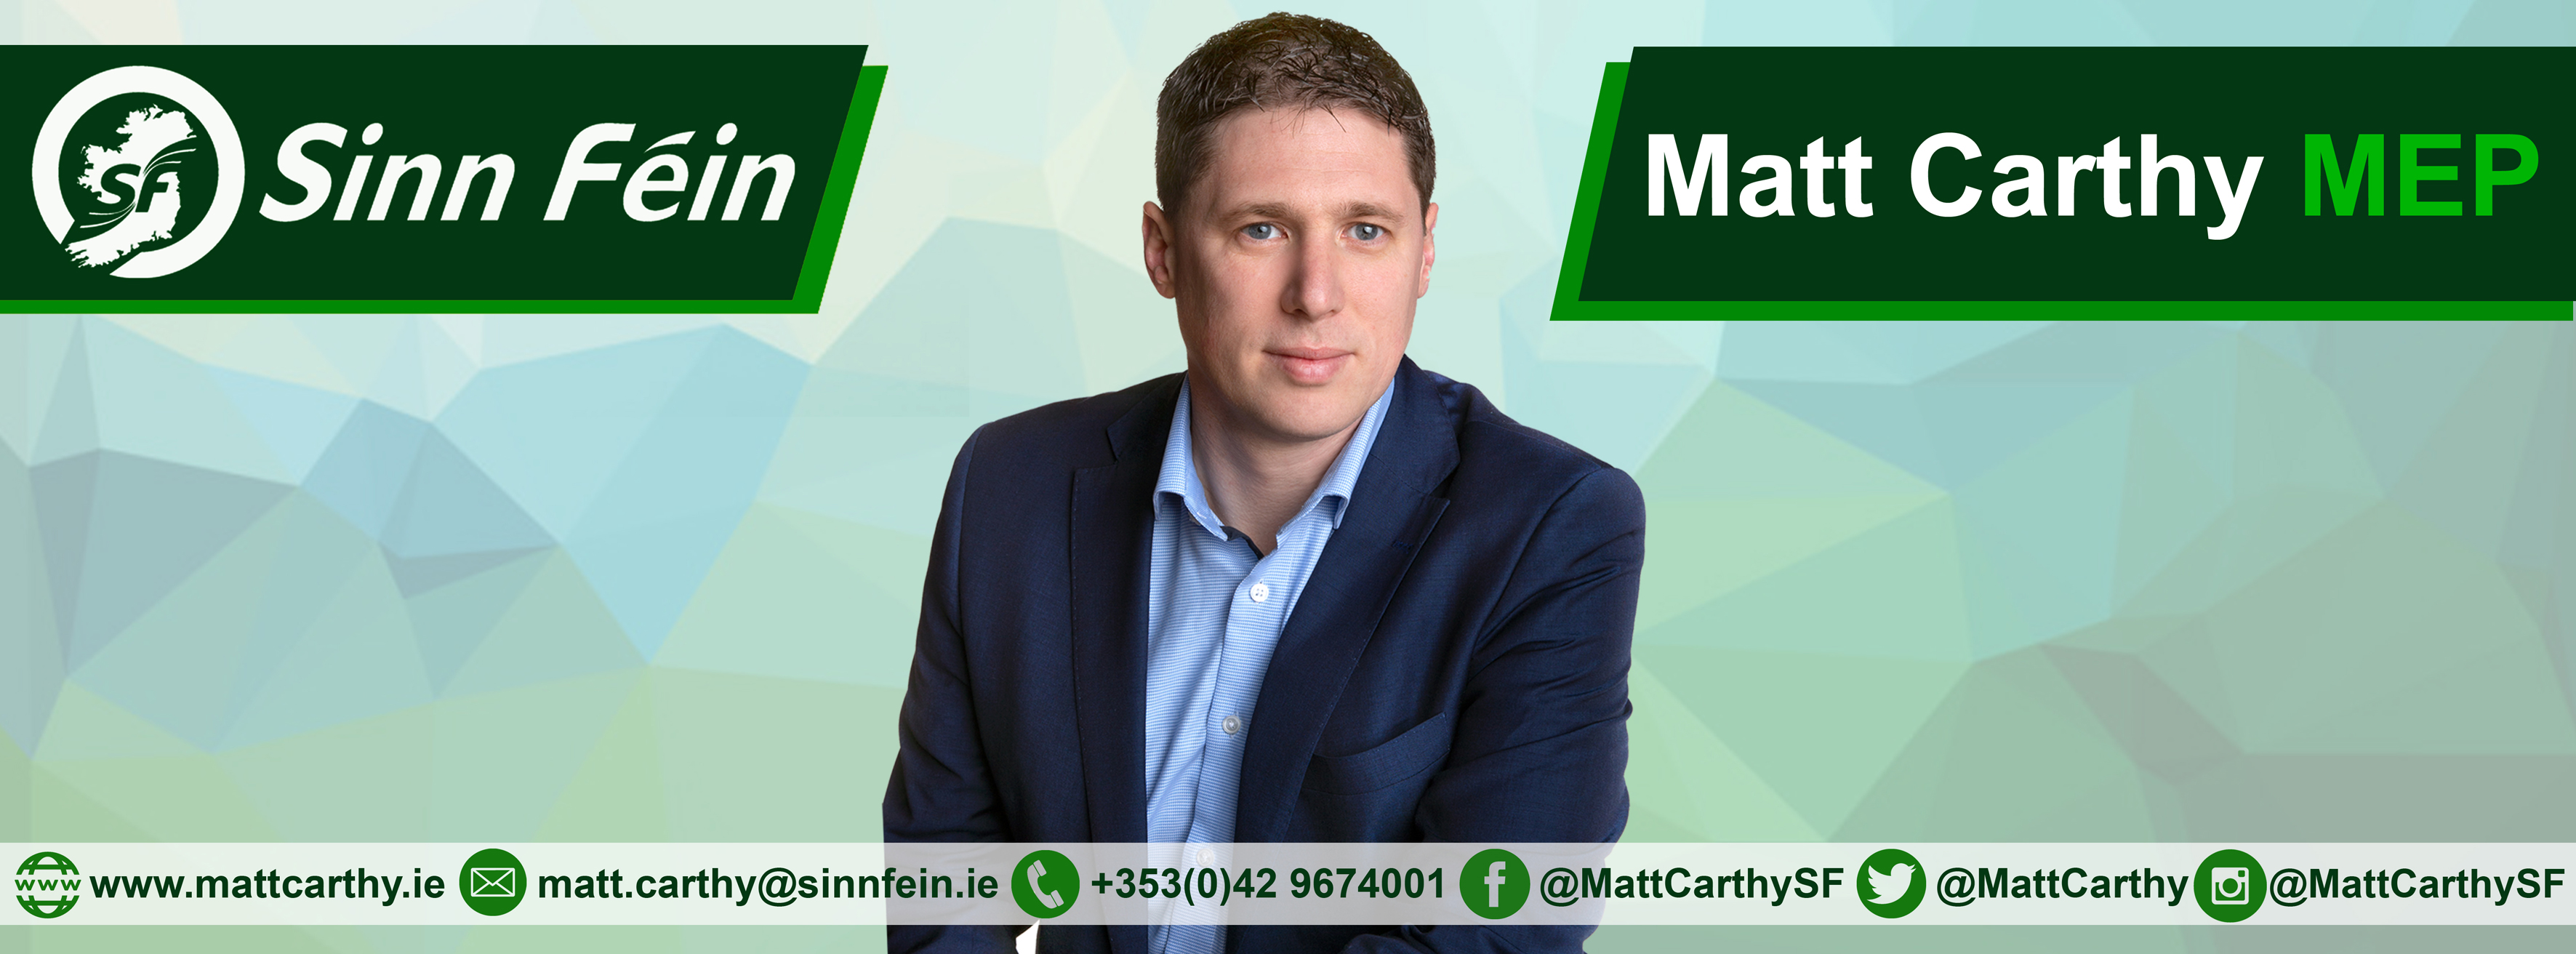 Matt Carthy MEP